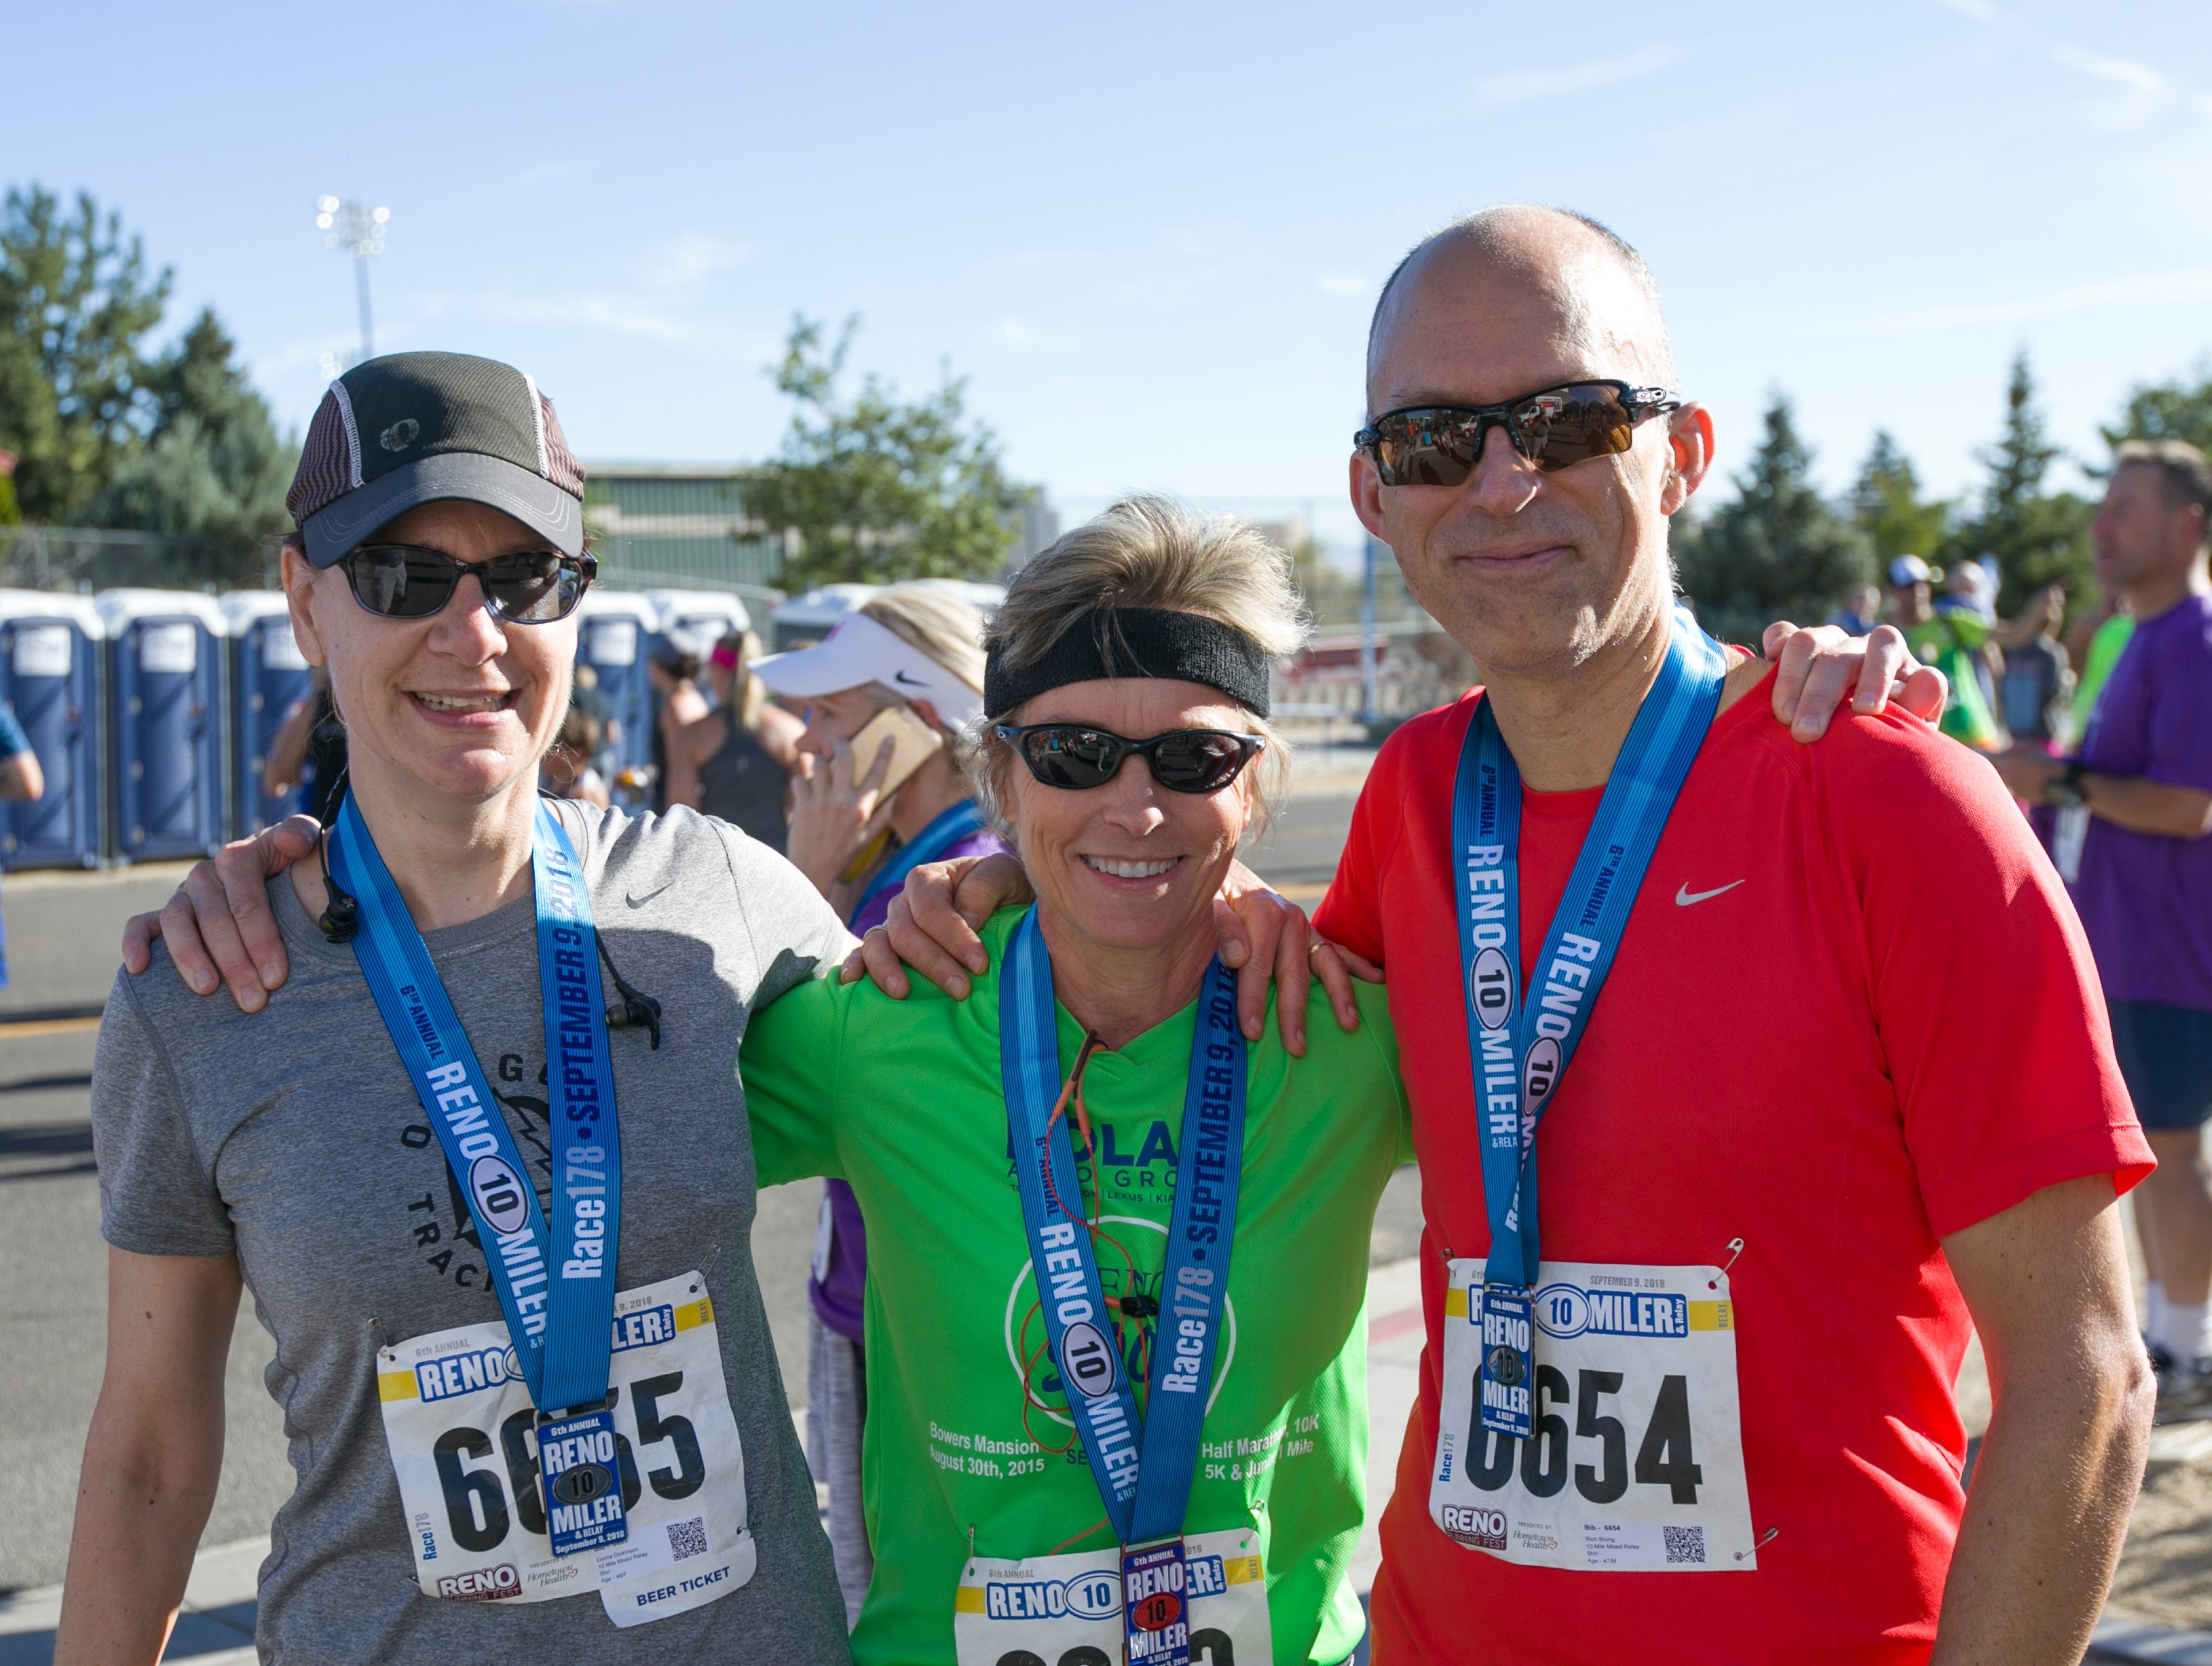 Emma, Lynni and Richard during the 50th Annual Journal Jog in Reno, Nevada on Sunday, September 9, 2018.